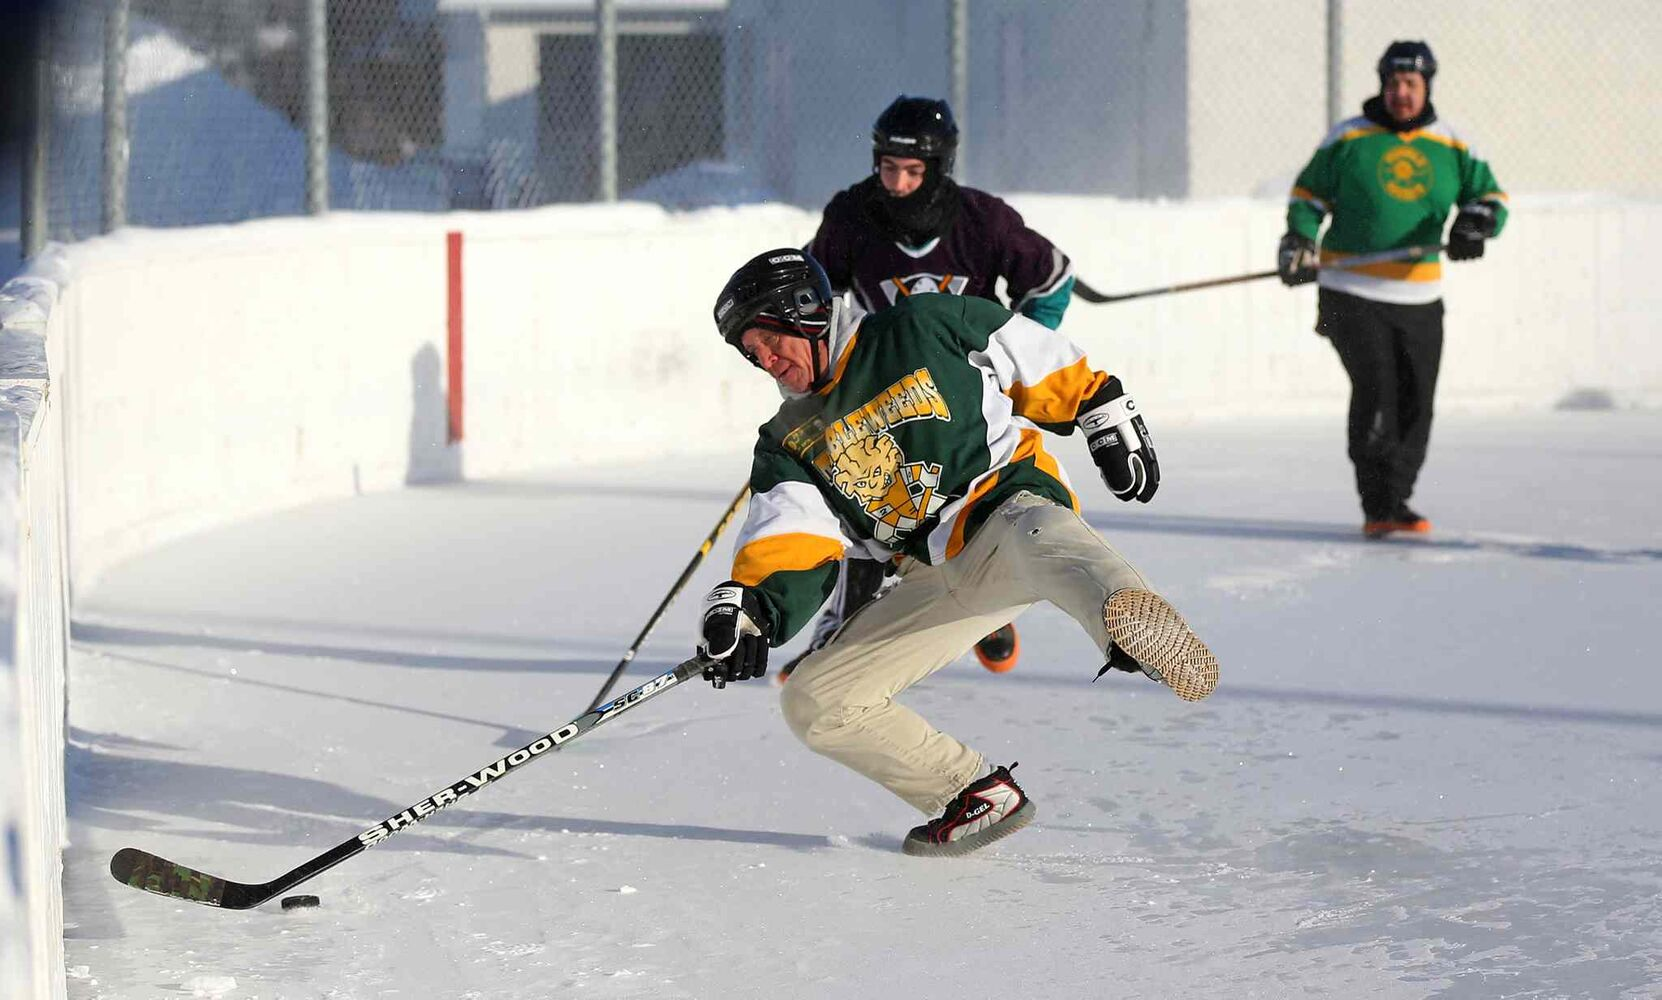 The Tumbleweeds' Colin Mackenzie loses his footing while playing against the Mighty Puckin' Drunks during a spongee game on Jan. 4, 2014. (Trevor Hagan / Winnipeg Free Press)